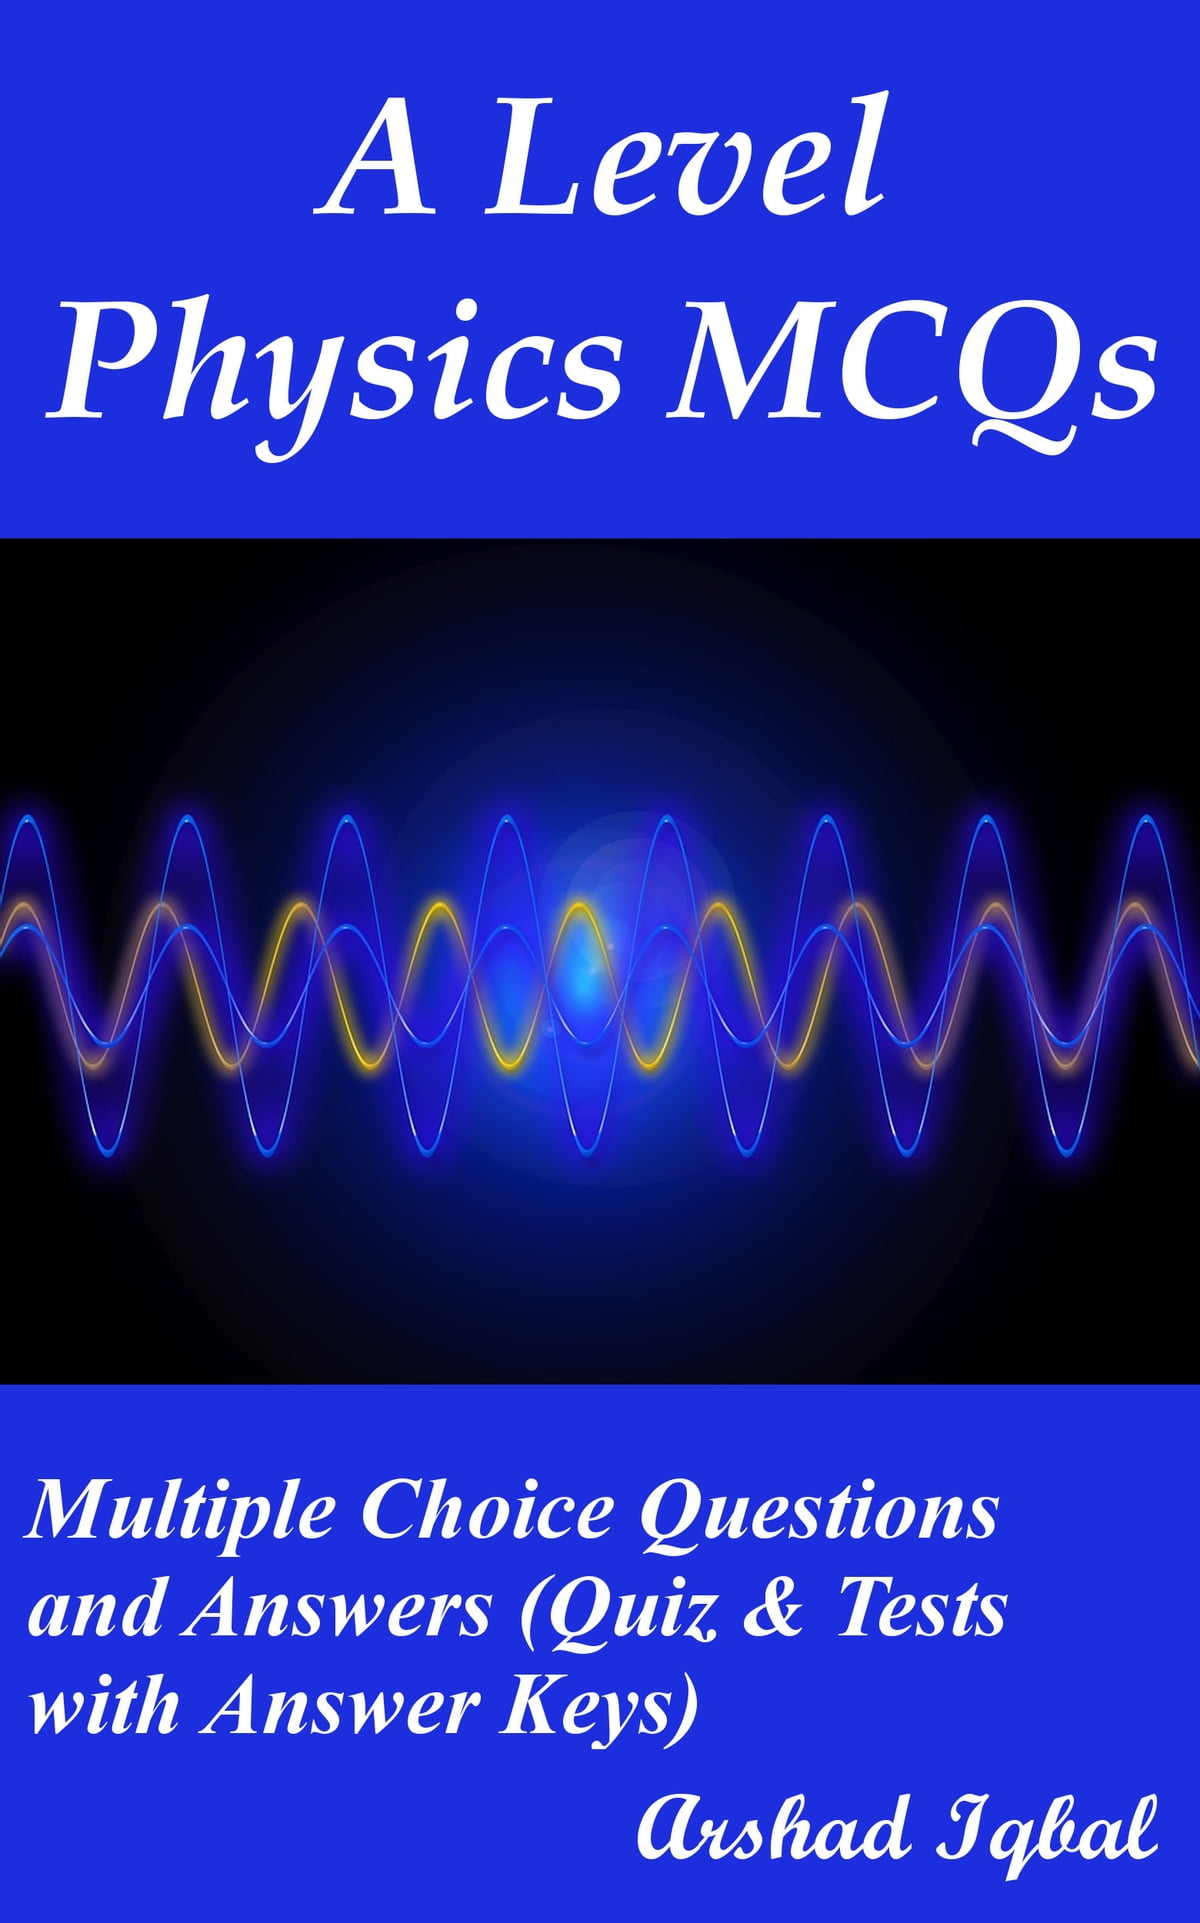 A Level Physics MCQs: Multiple Choice Questions and Answers (Quiz & Tests  with Answer Keys) ebook by Arshad Iqbal - Rakuten Kobo